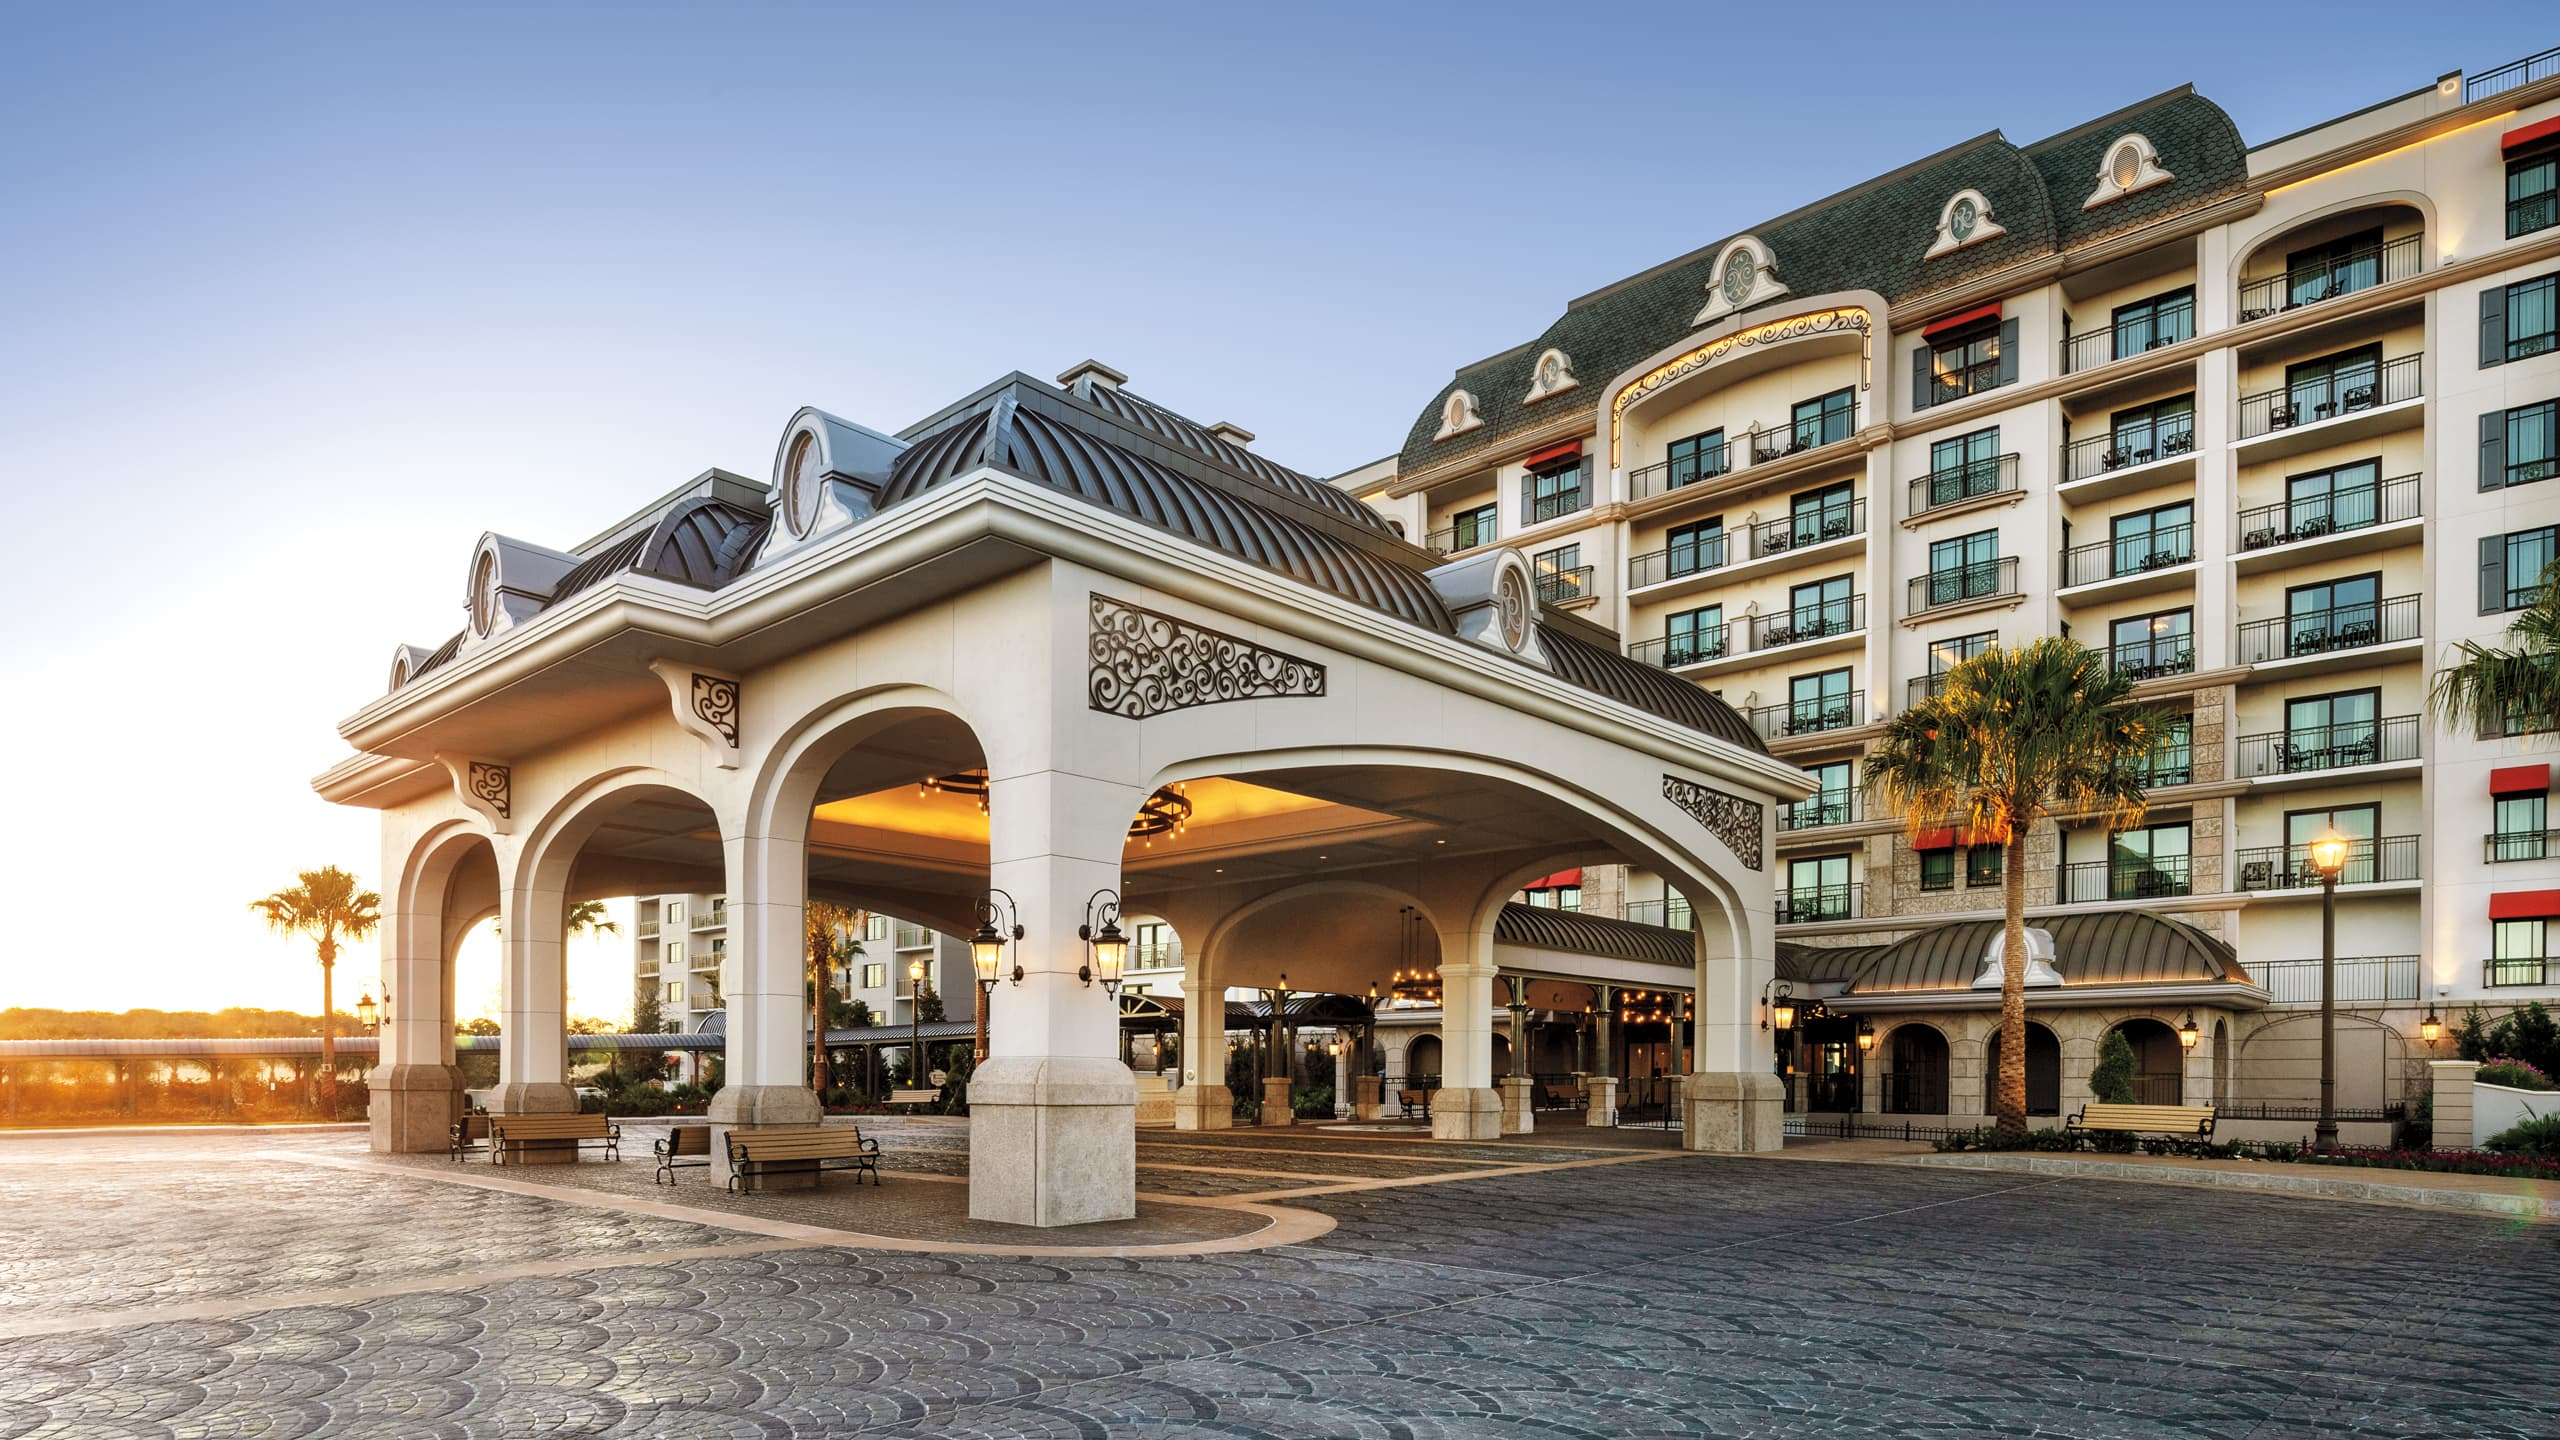 The grand entrance of Disney's Riviera Resort